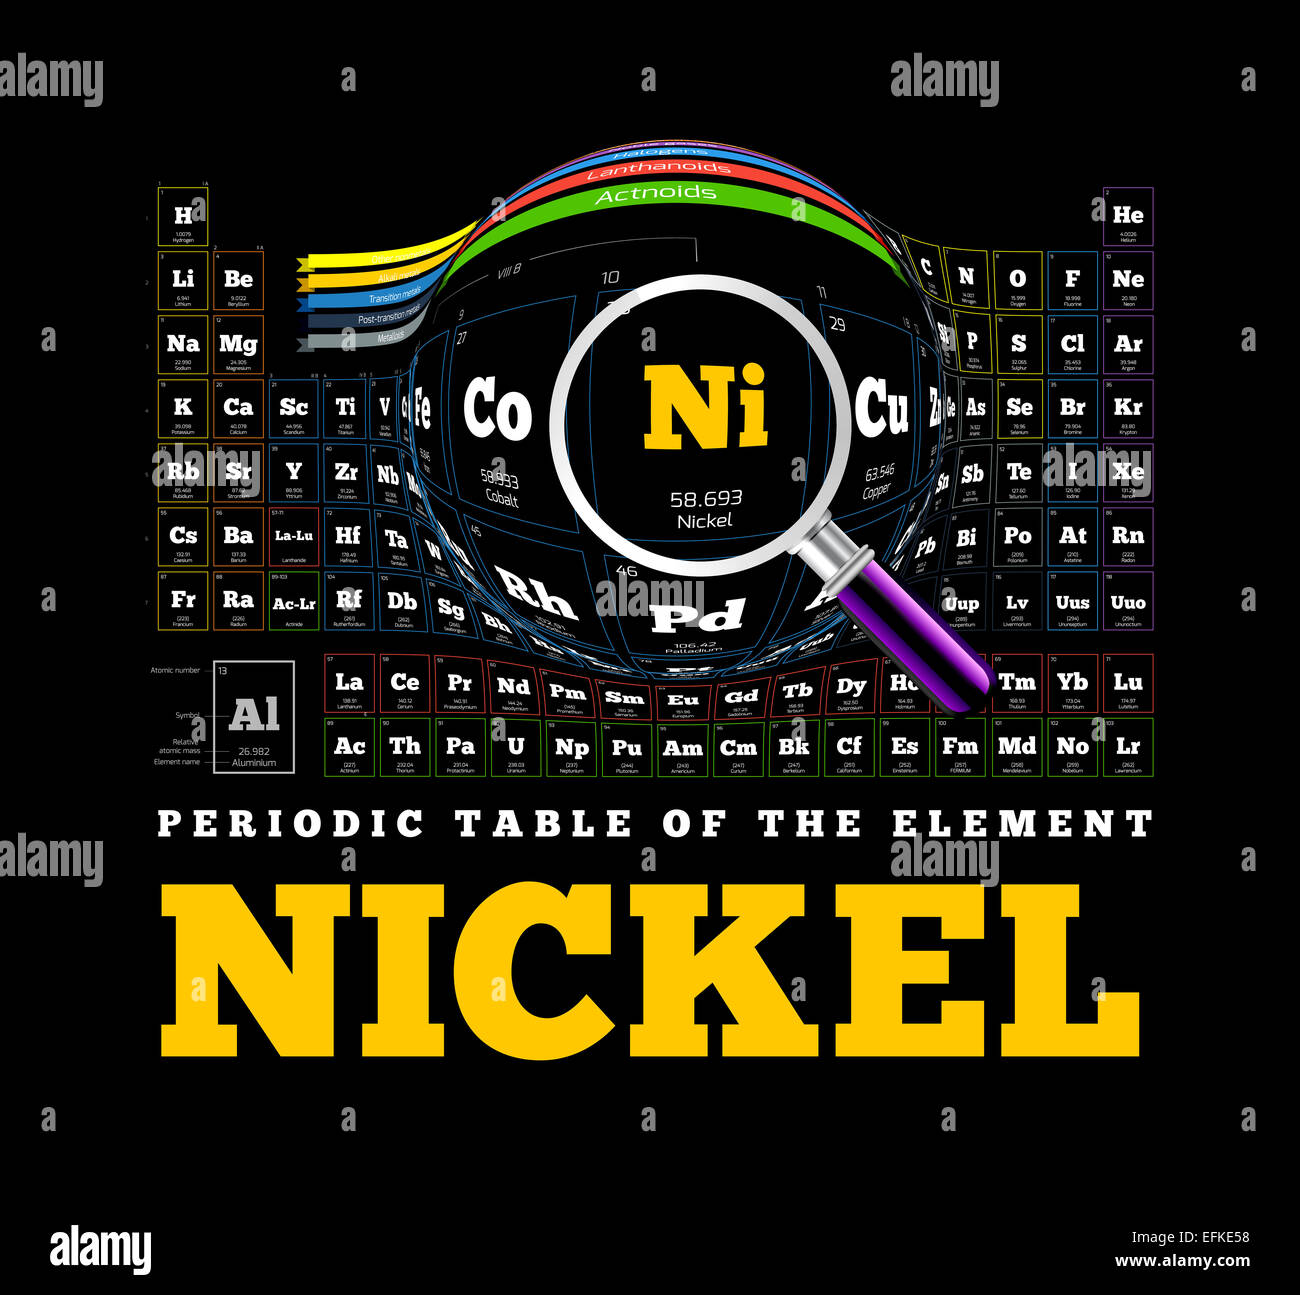 Periodic Table of the element  Nickel, Ni Stock Photo: 78489524 - Alamy